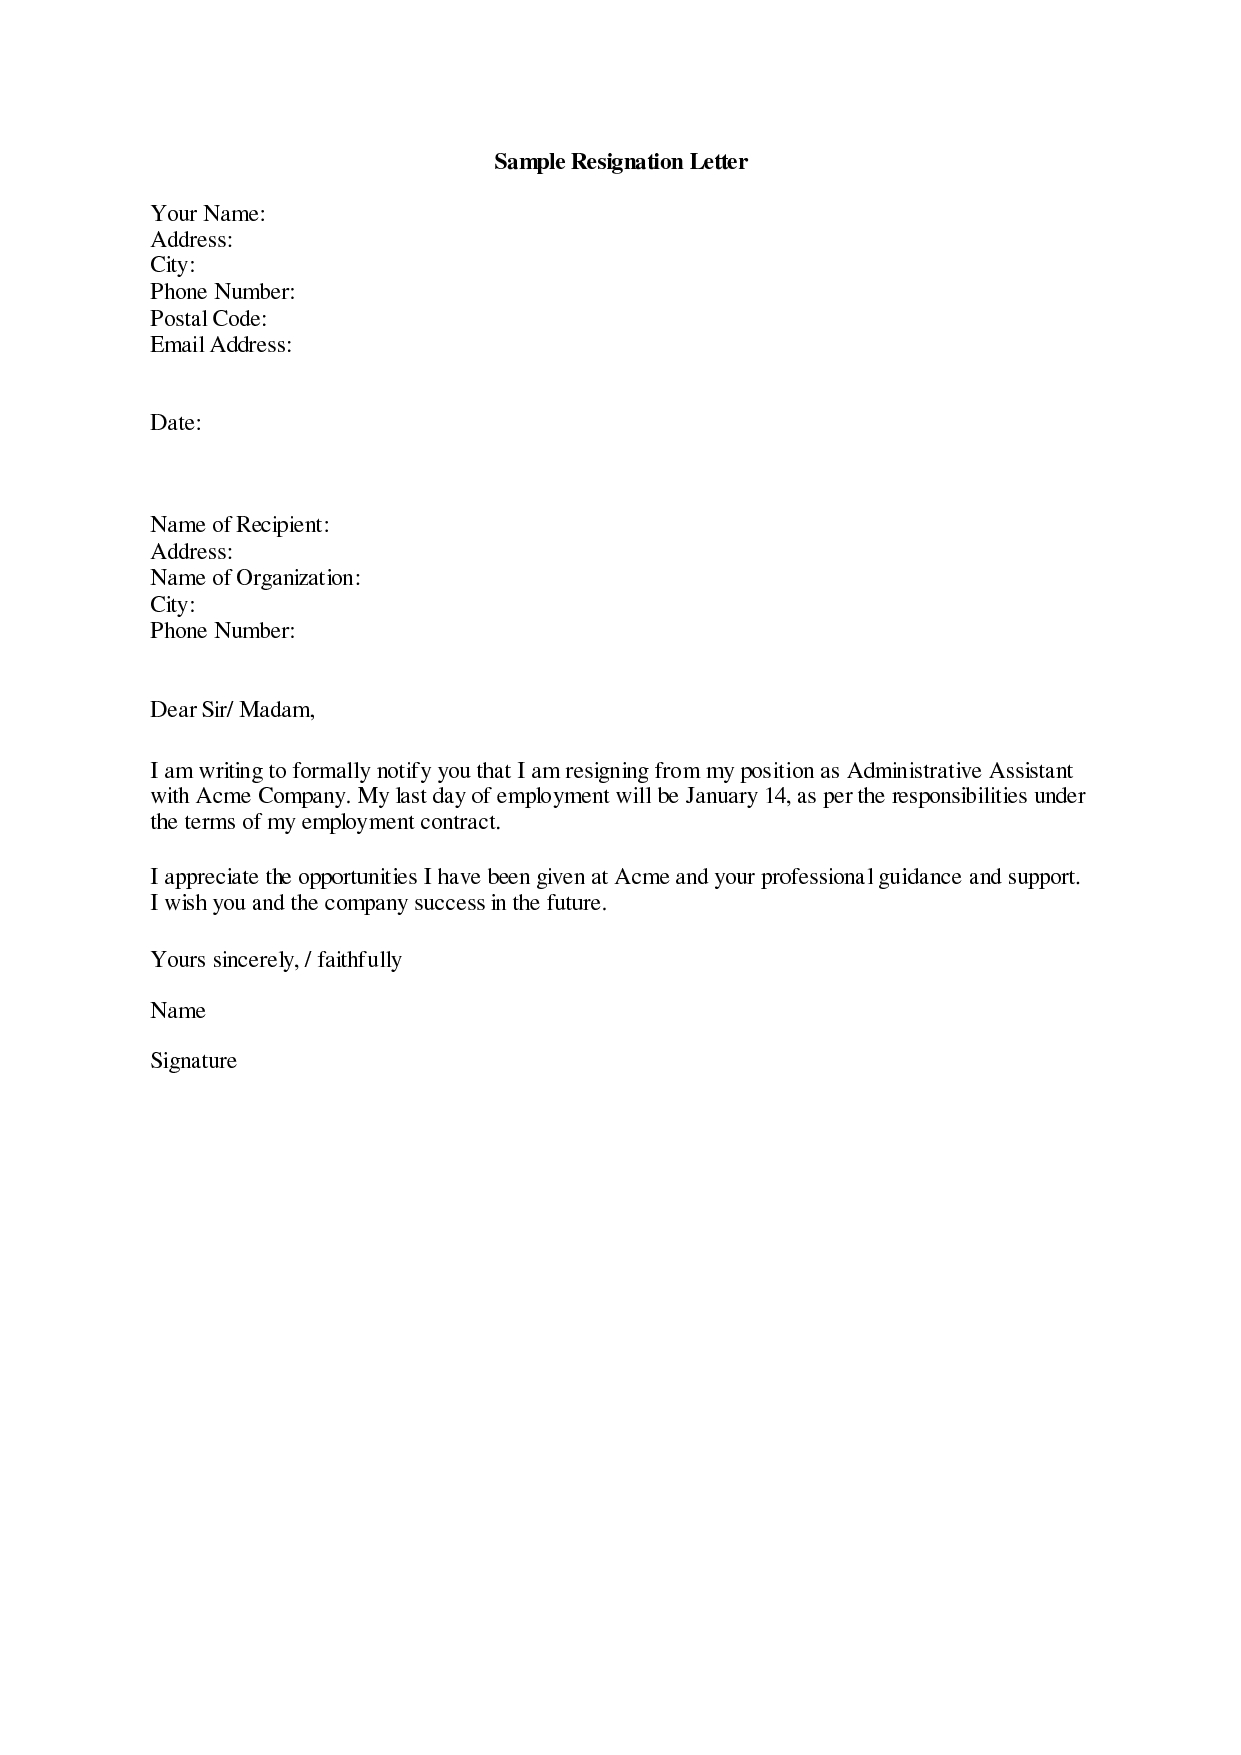 7 Day Notice Letter Construction Template - Resignation Letter Sample 19 Letter Of Resignation